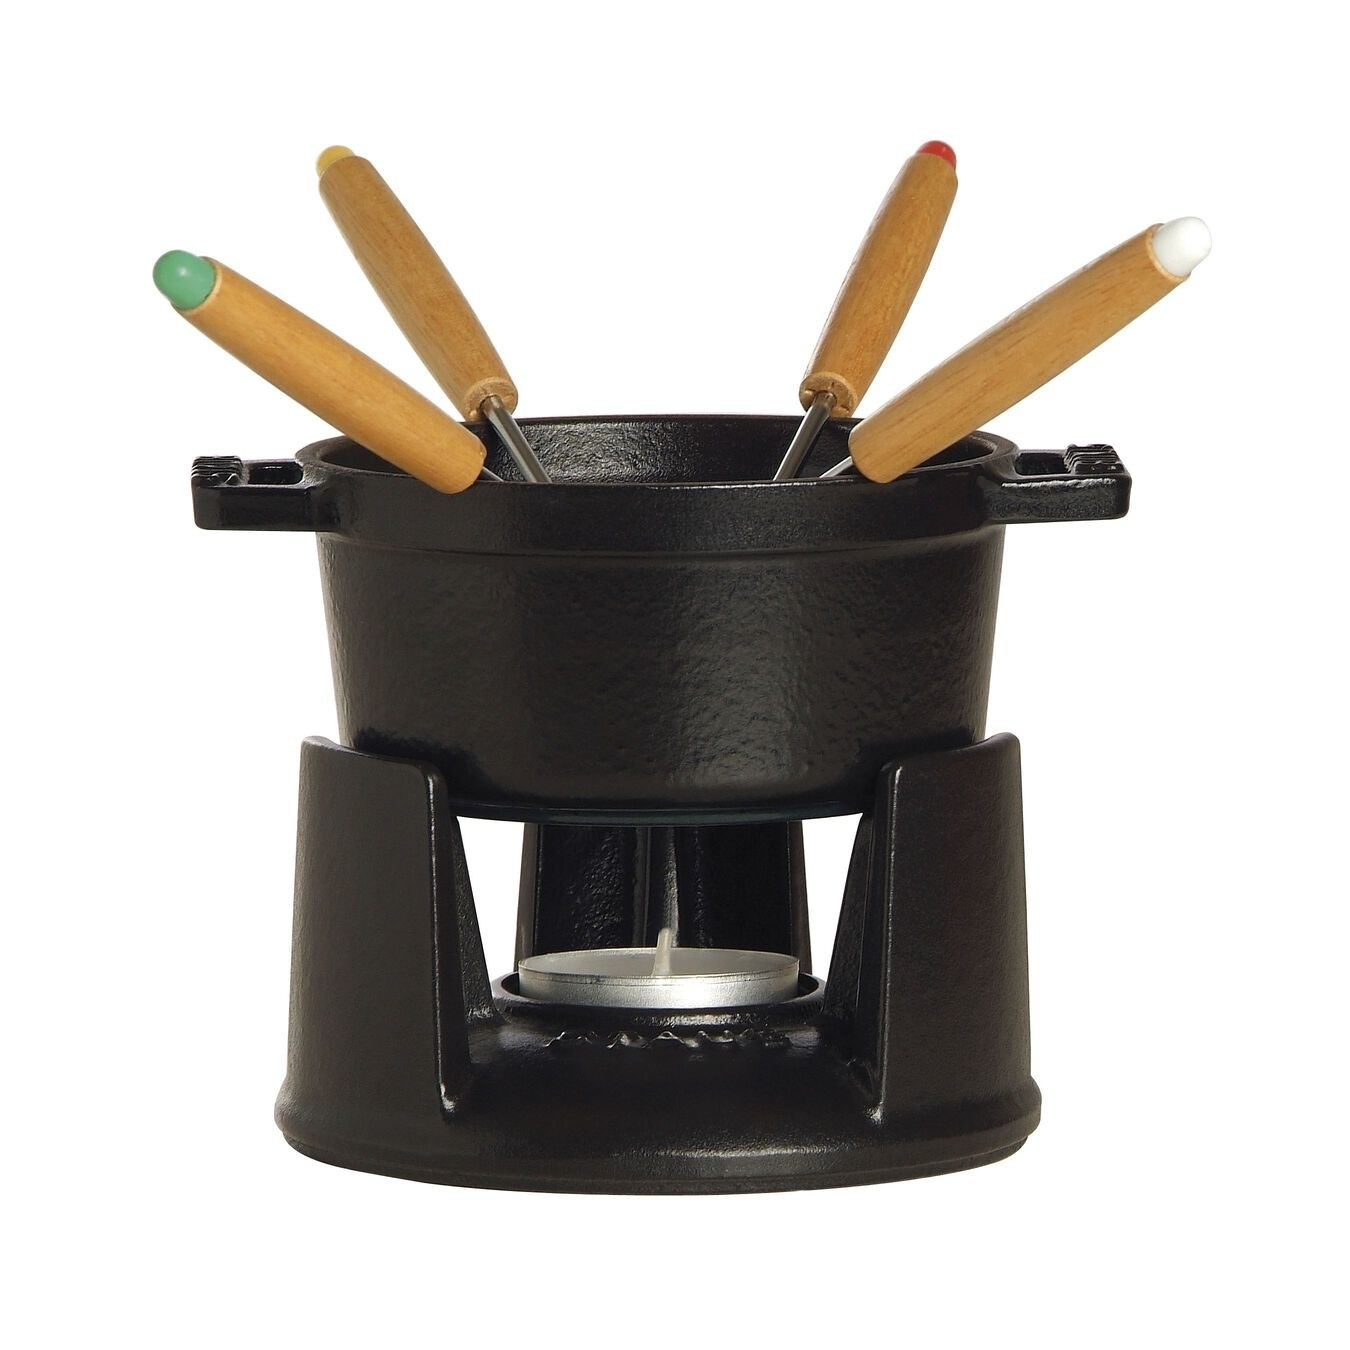 the black fondue pot and sticks to dip food in